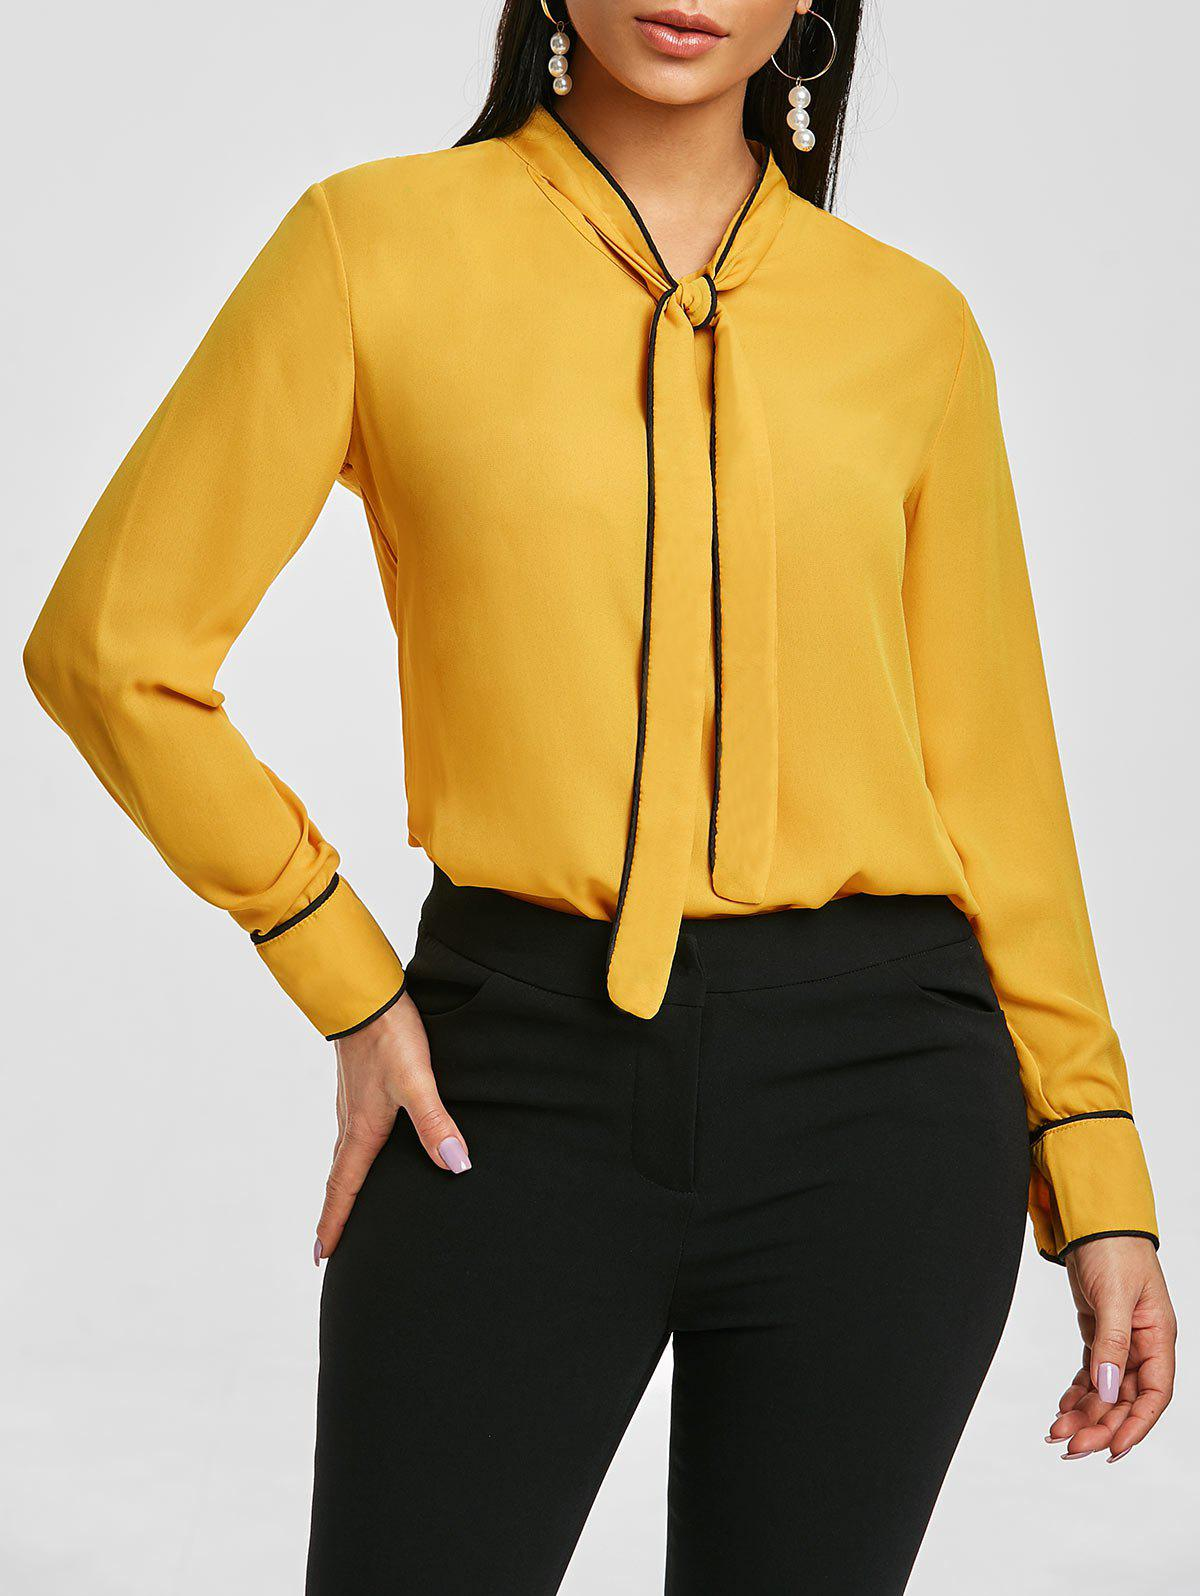 f01bcf93293fd0 37% OFF] Long Sleeves Bow Tie Blouse | Rosegal